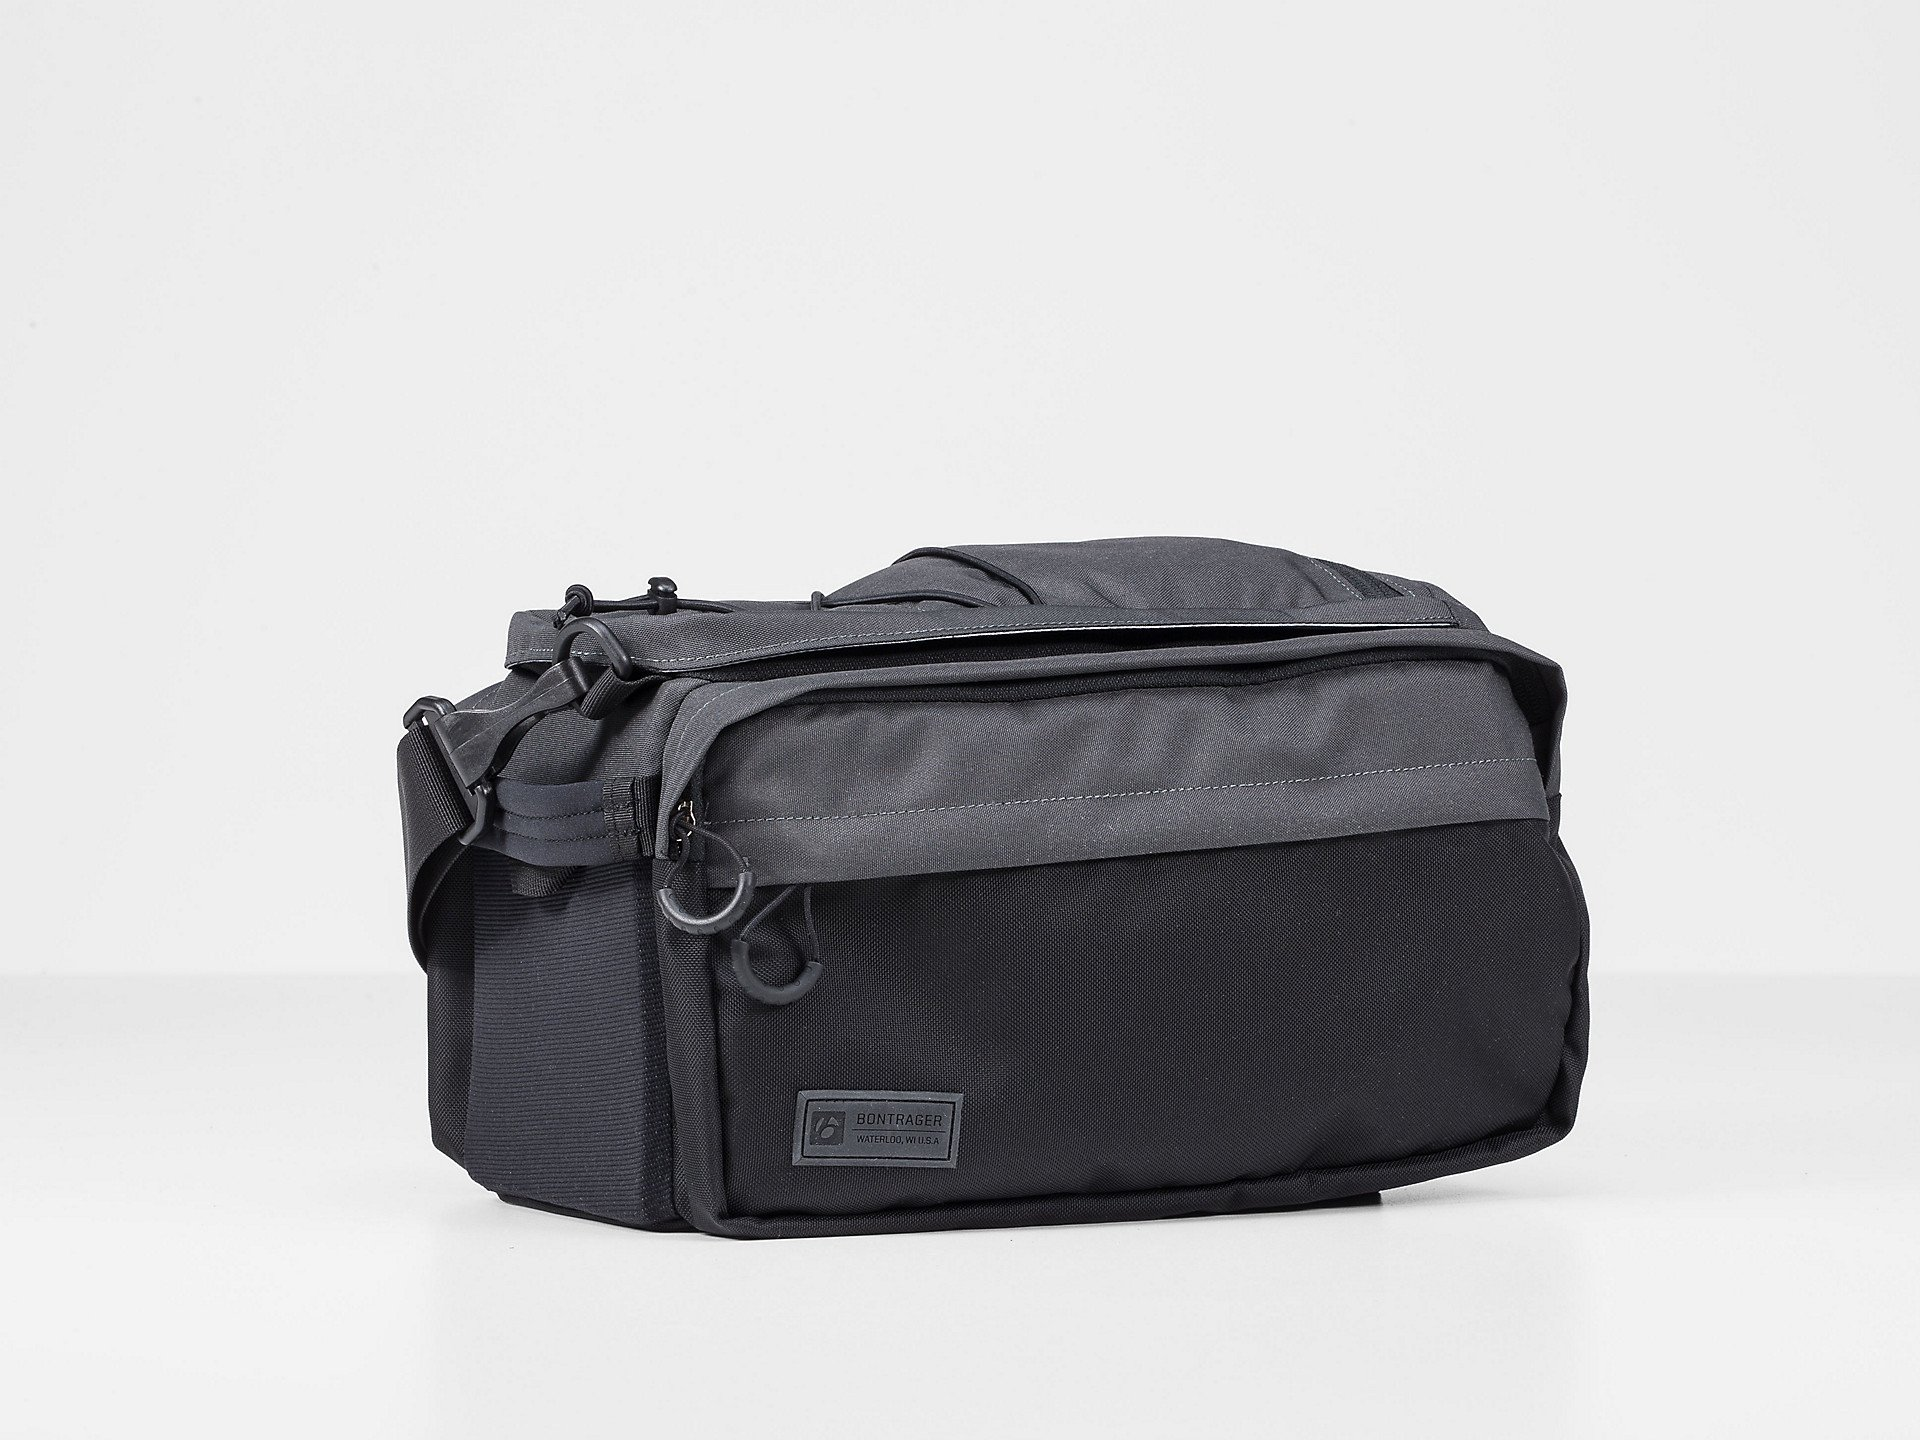 Bontrager MIK Utility Trunk With Panniers Black